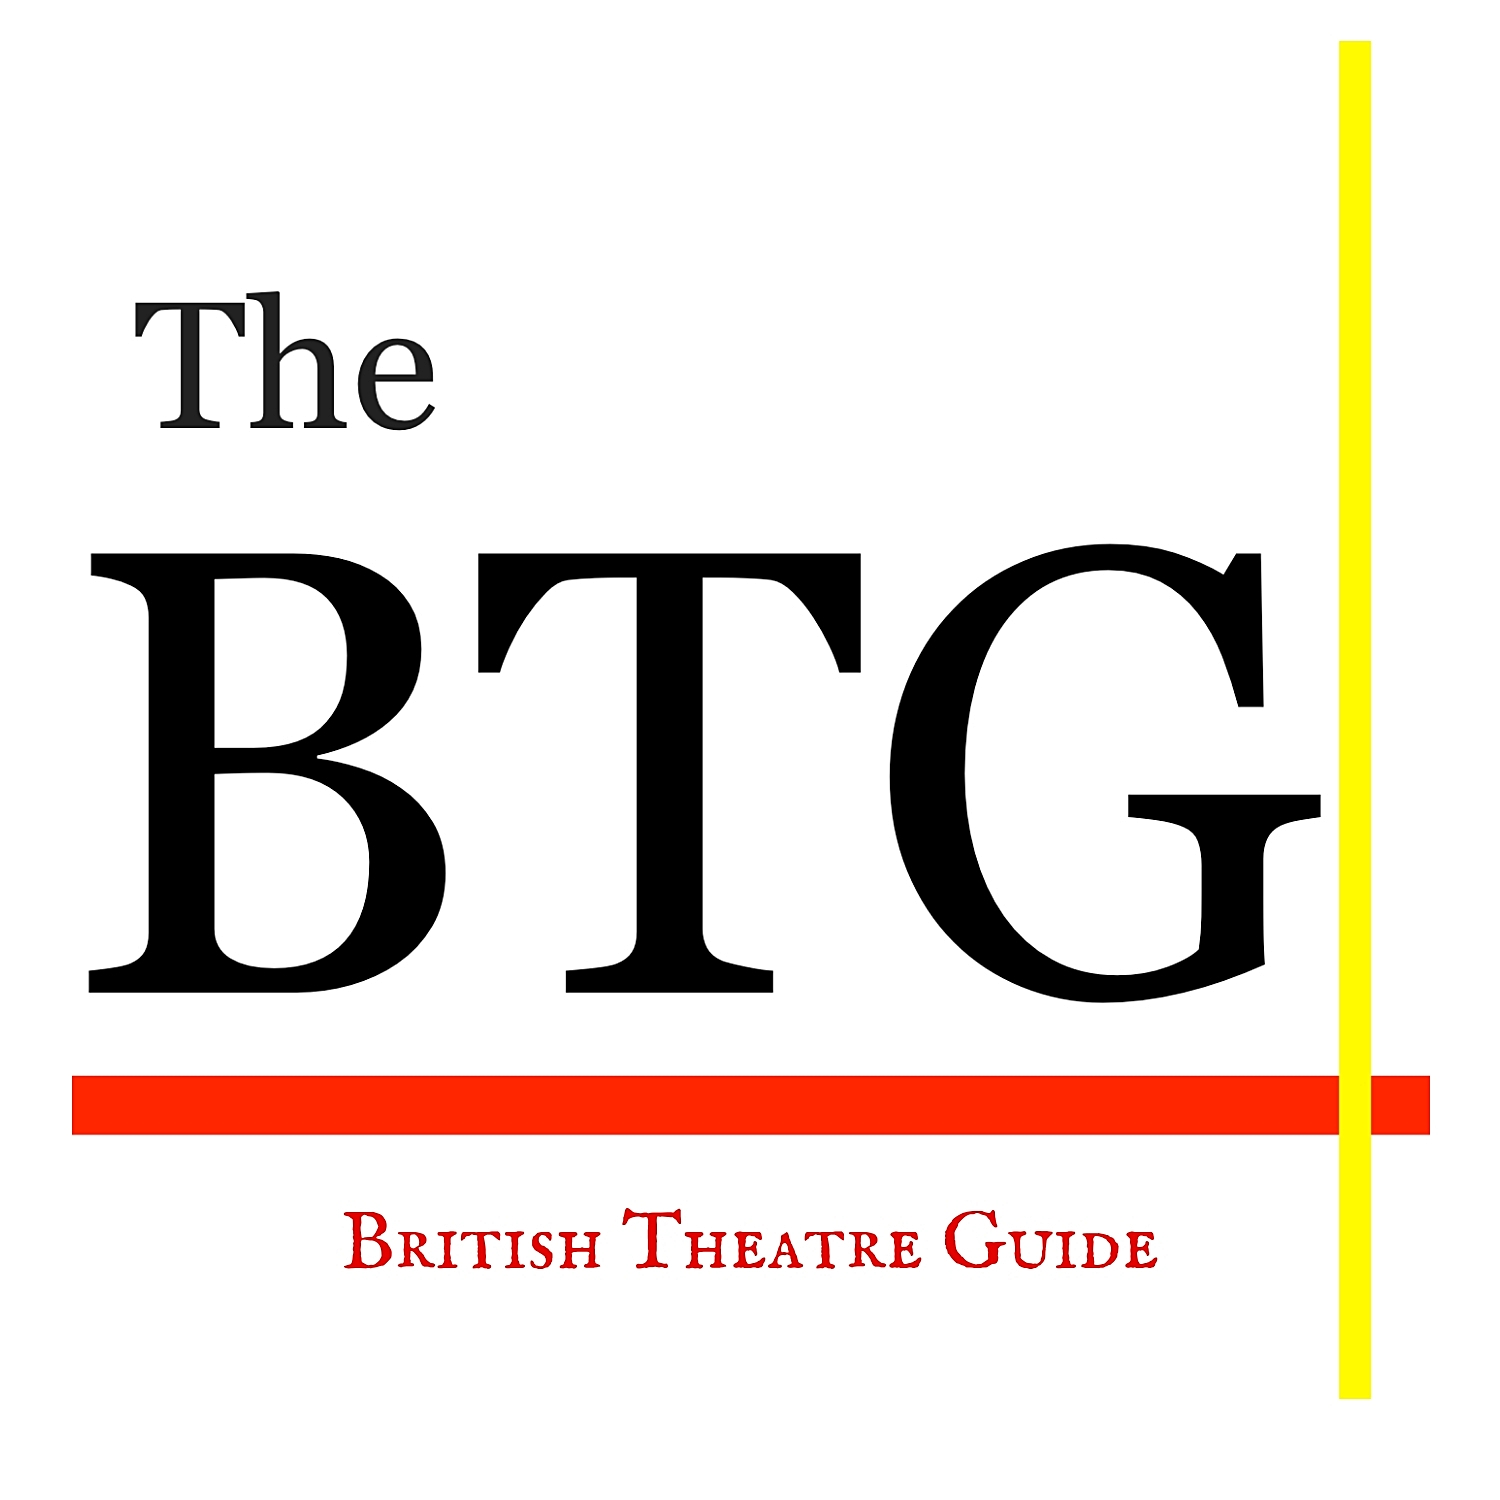 British Theatre Guide.jpg